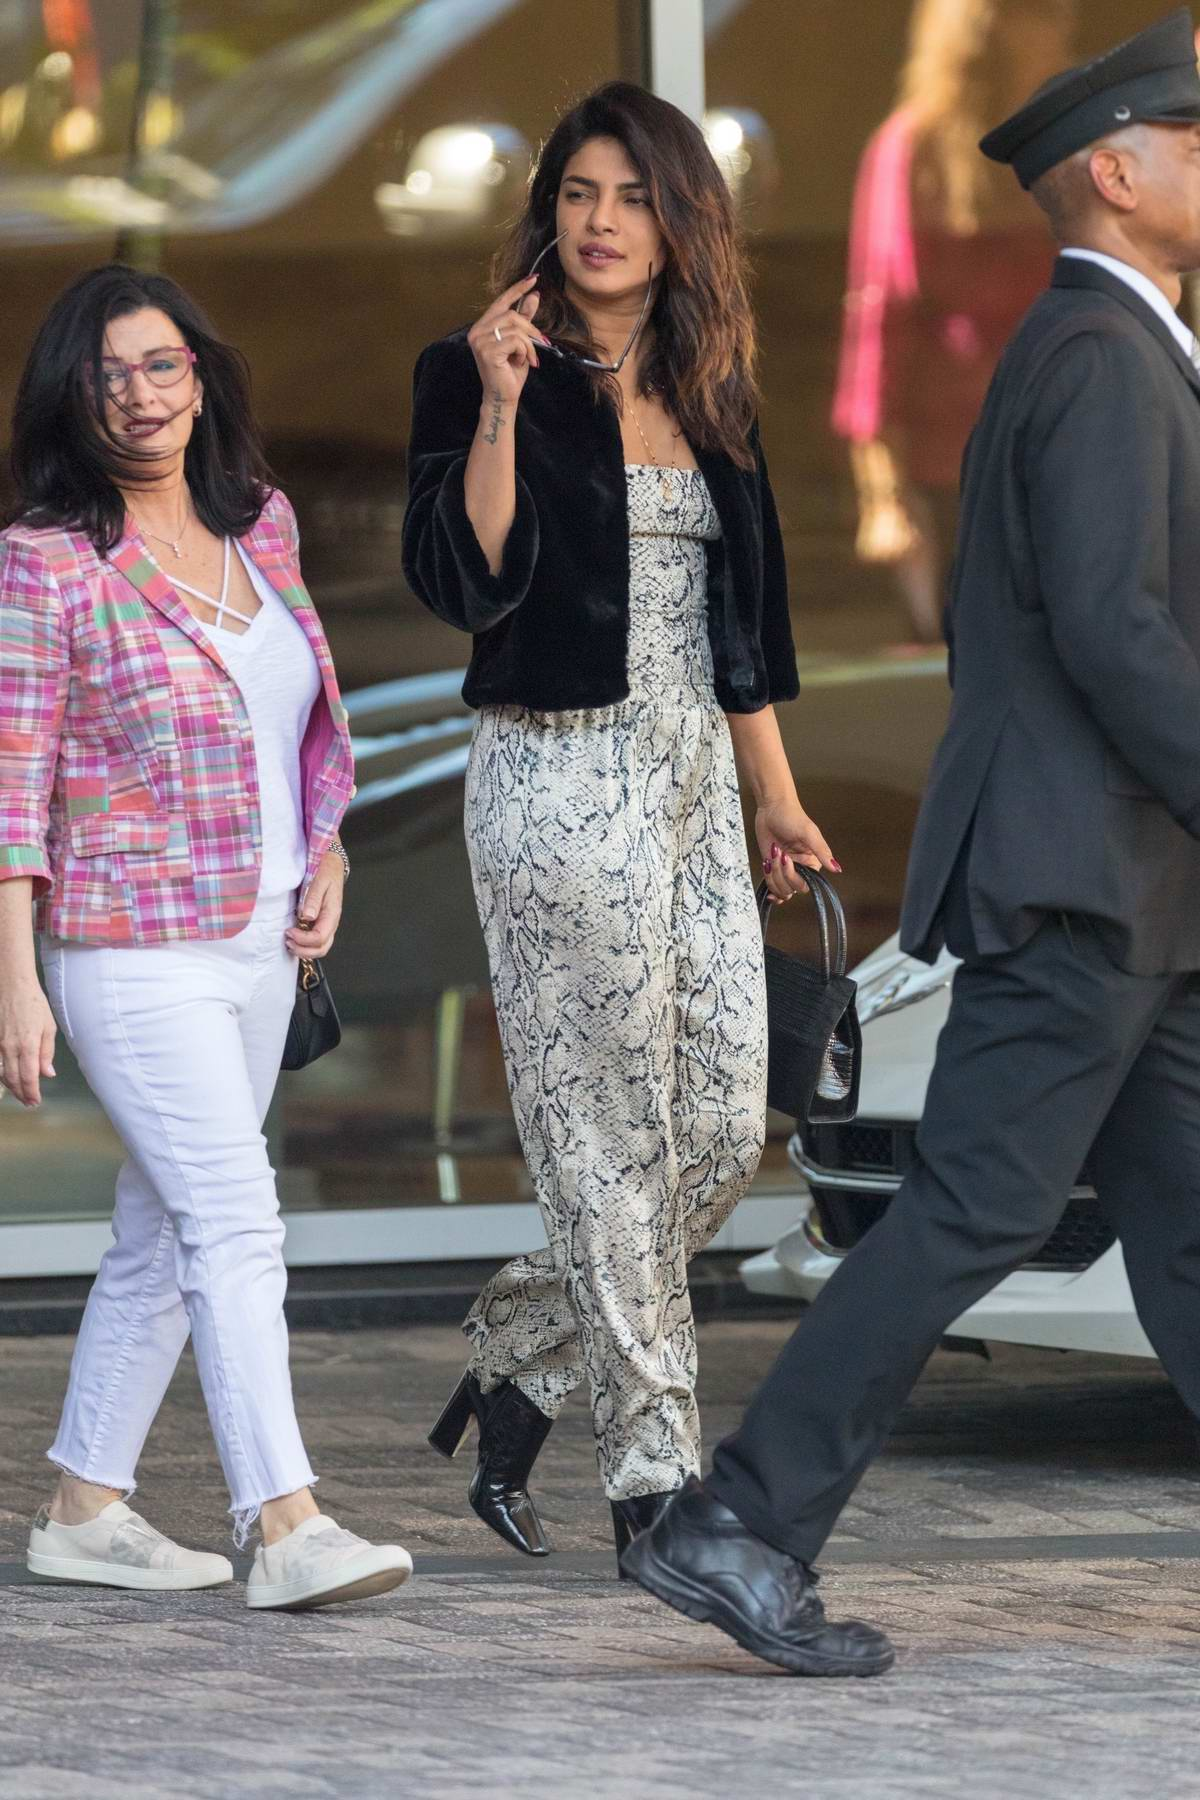 Priyanka Chopra heads out for dinner with her mother-in-law in Atlanta